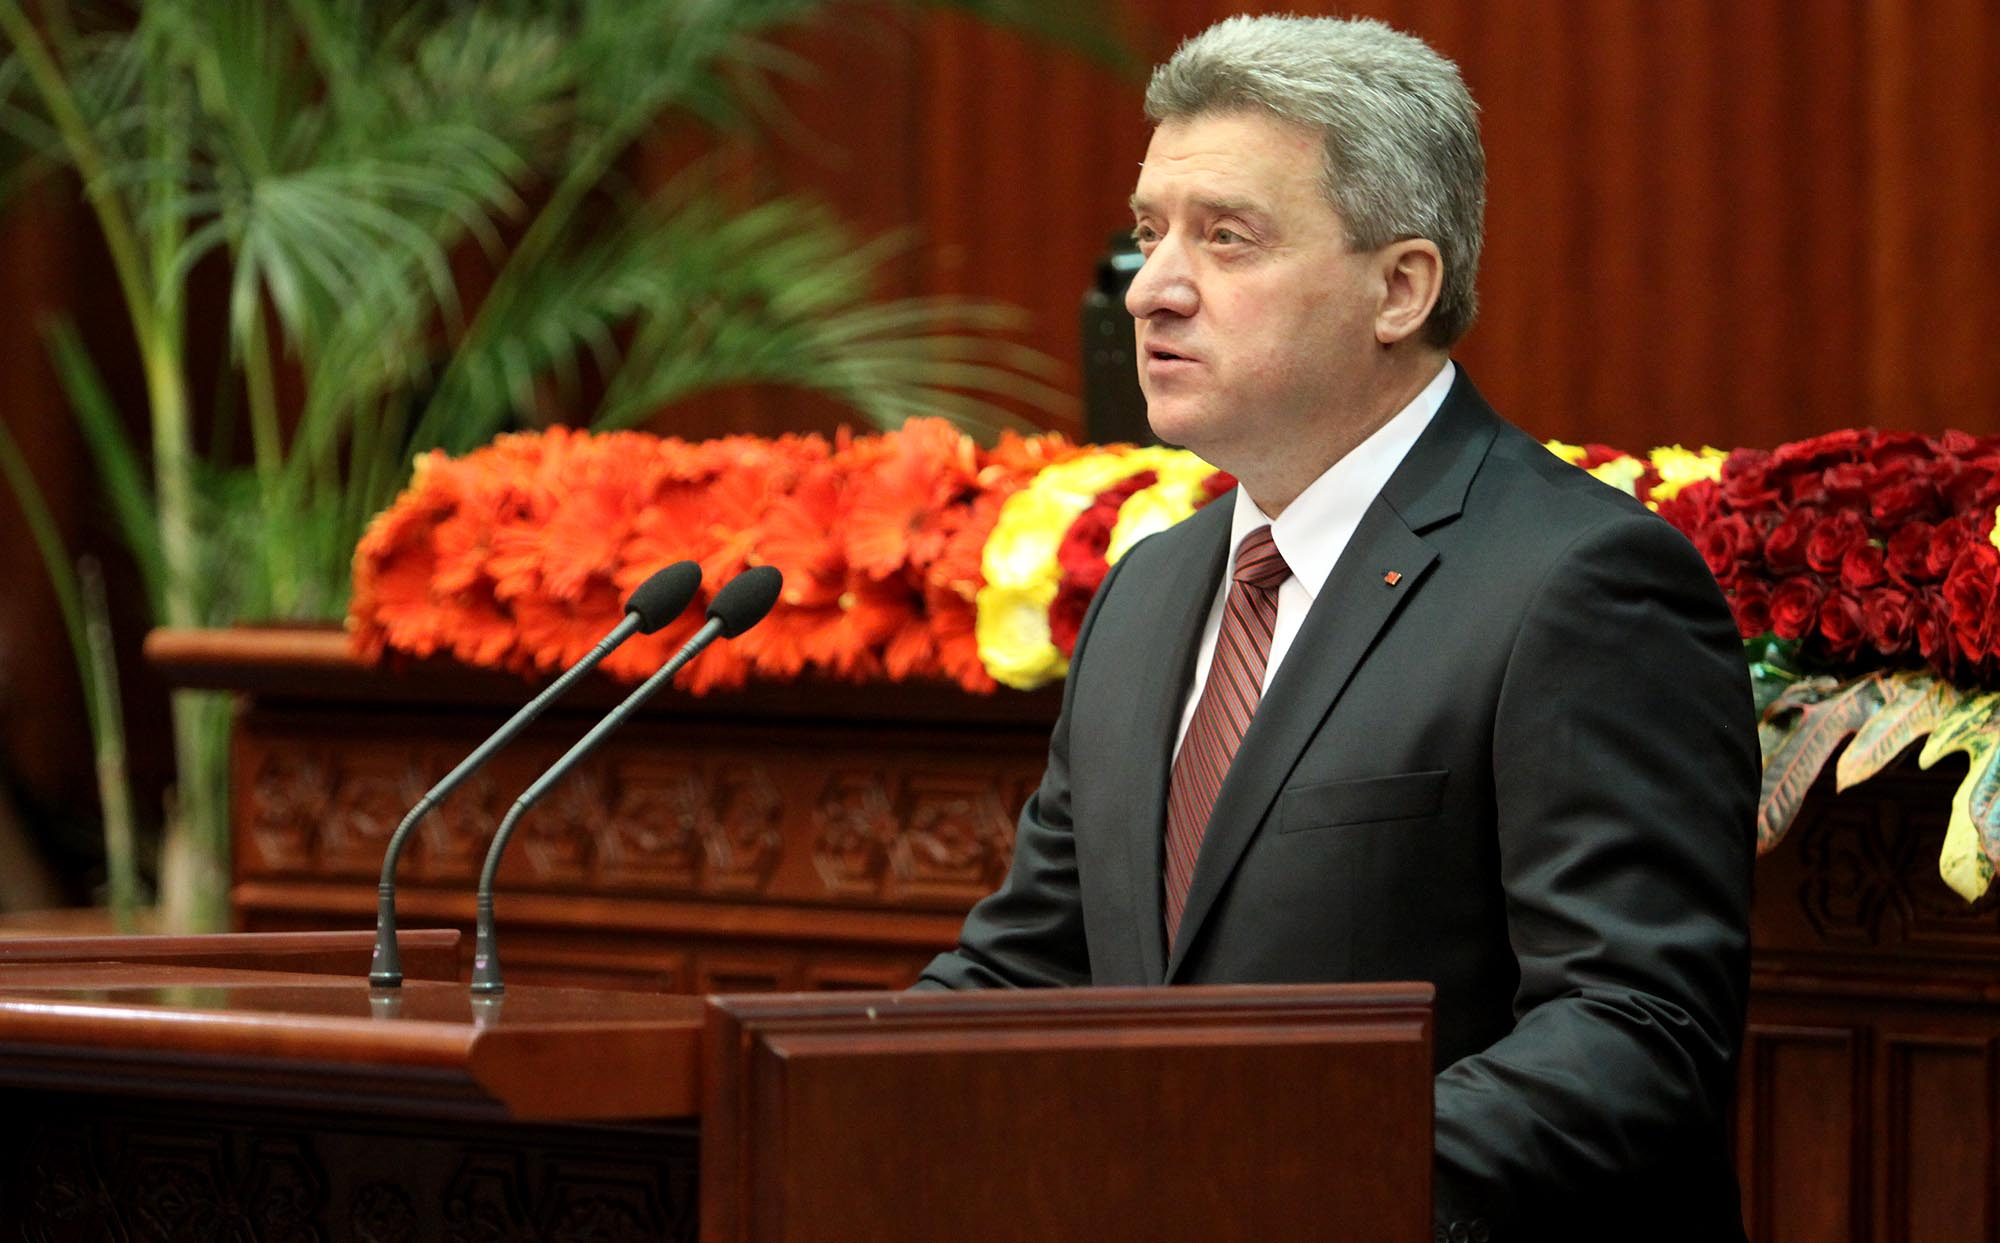 Ivanov: I will not allow constitutional amendments for the name change